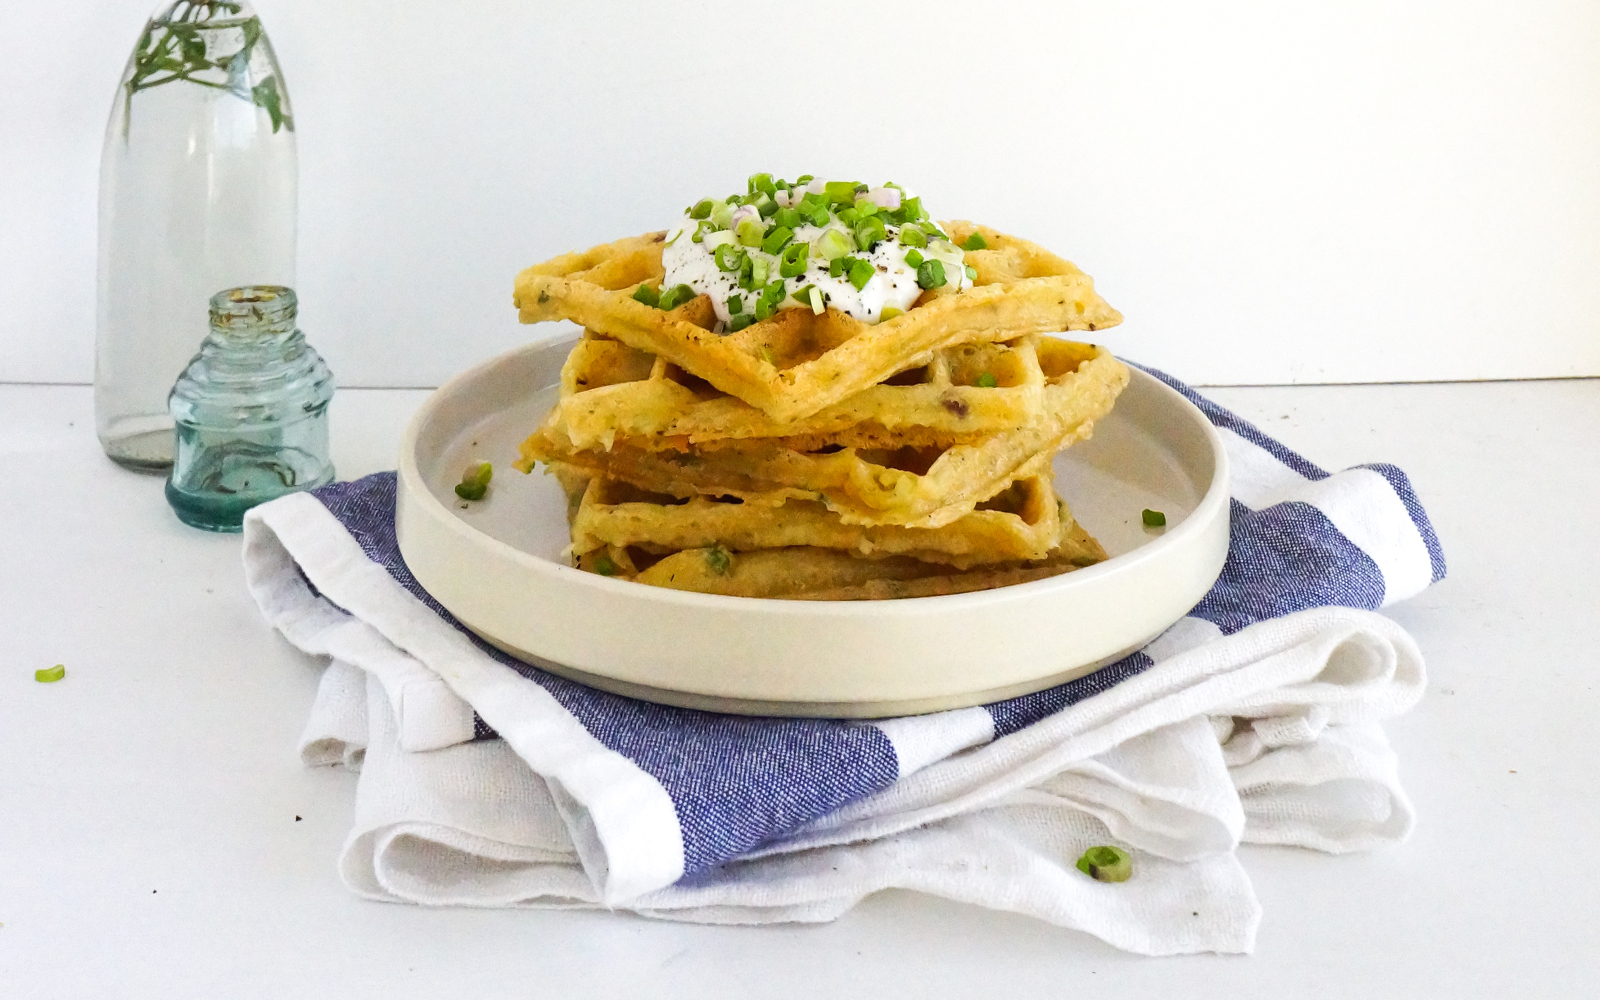 Coconut Milk, Spring Onion, and Cheese Waffles